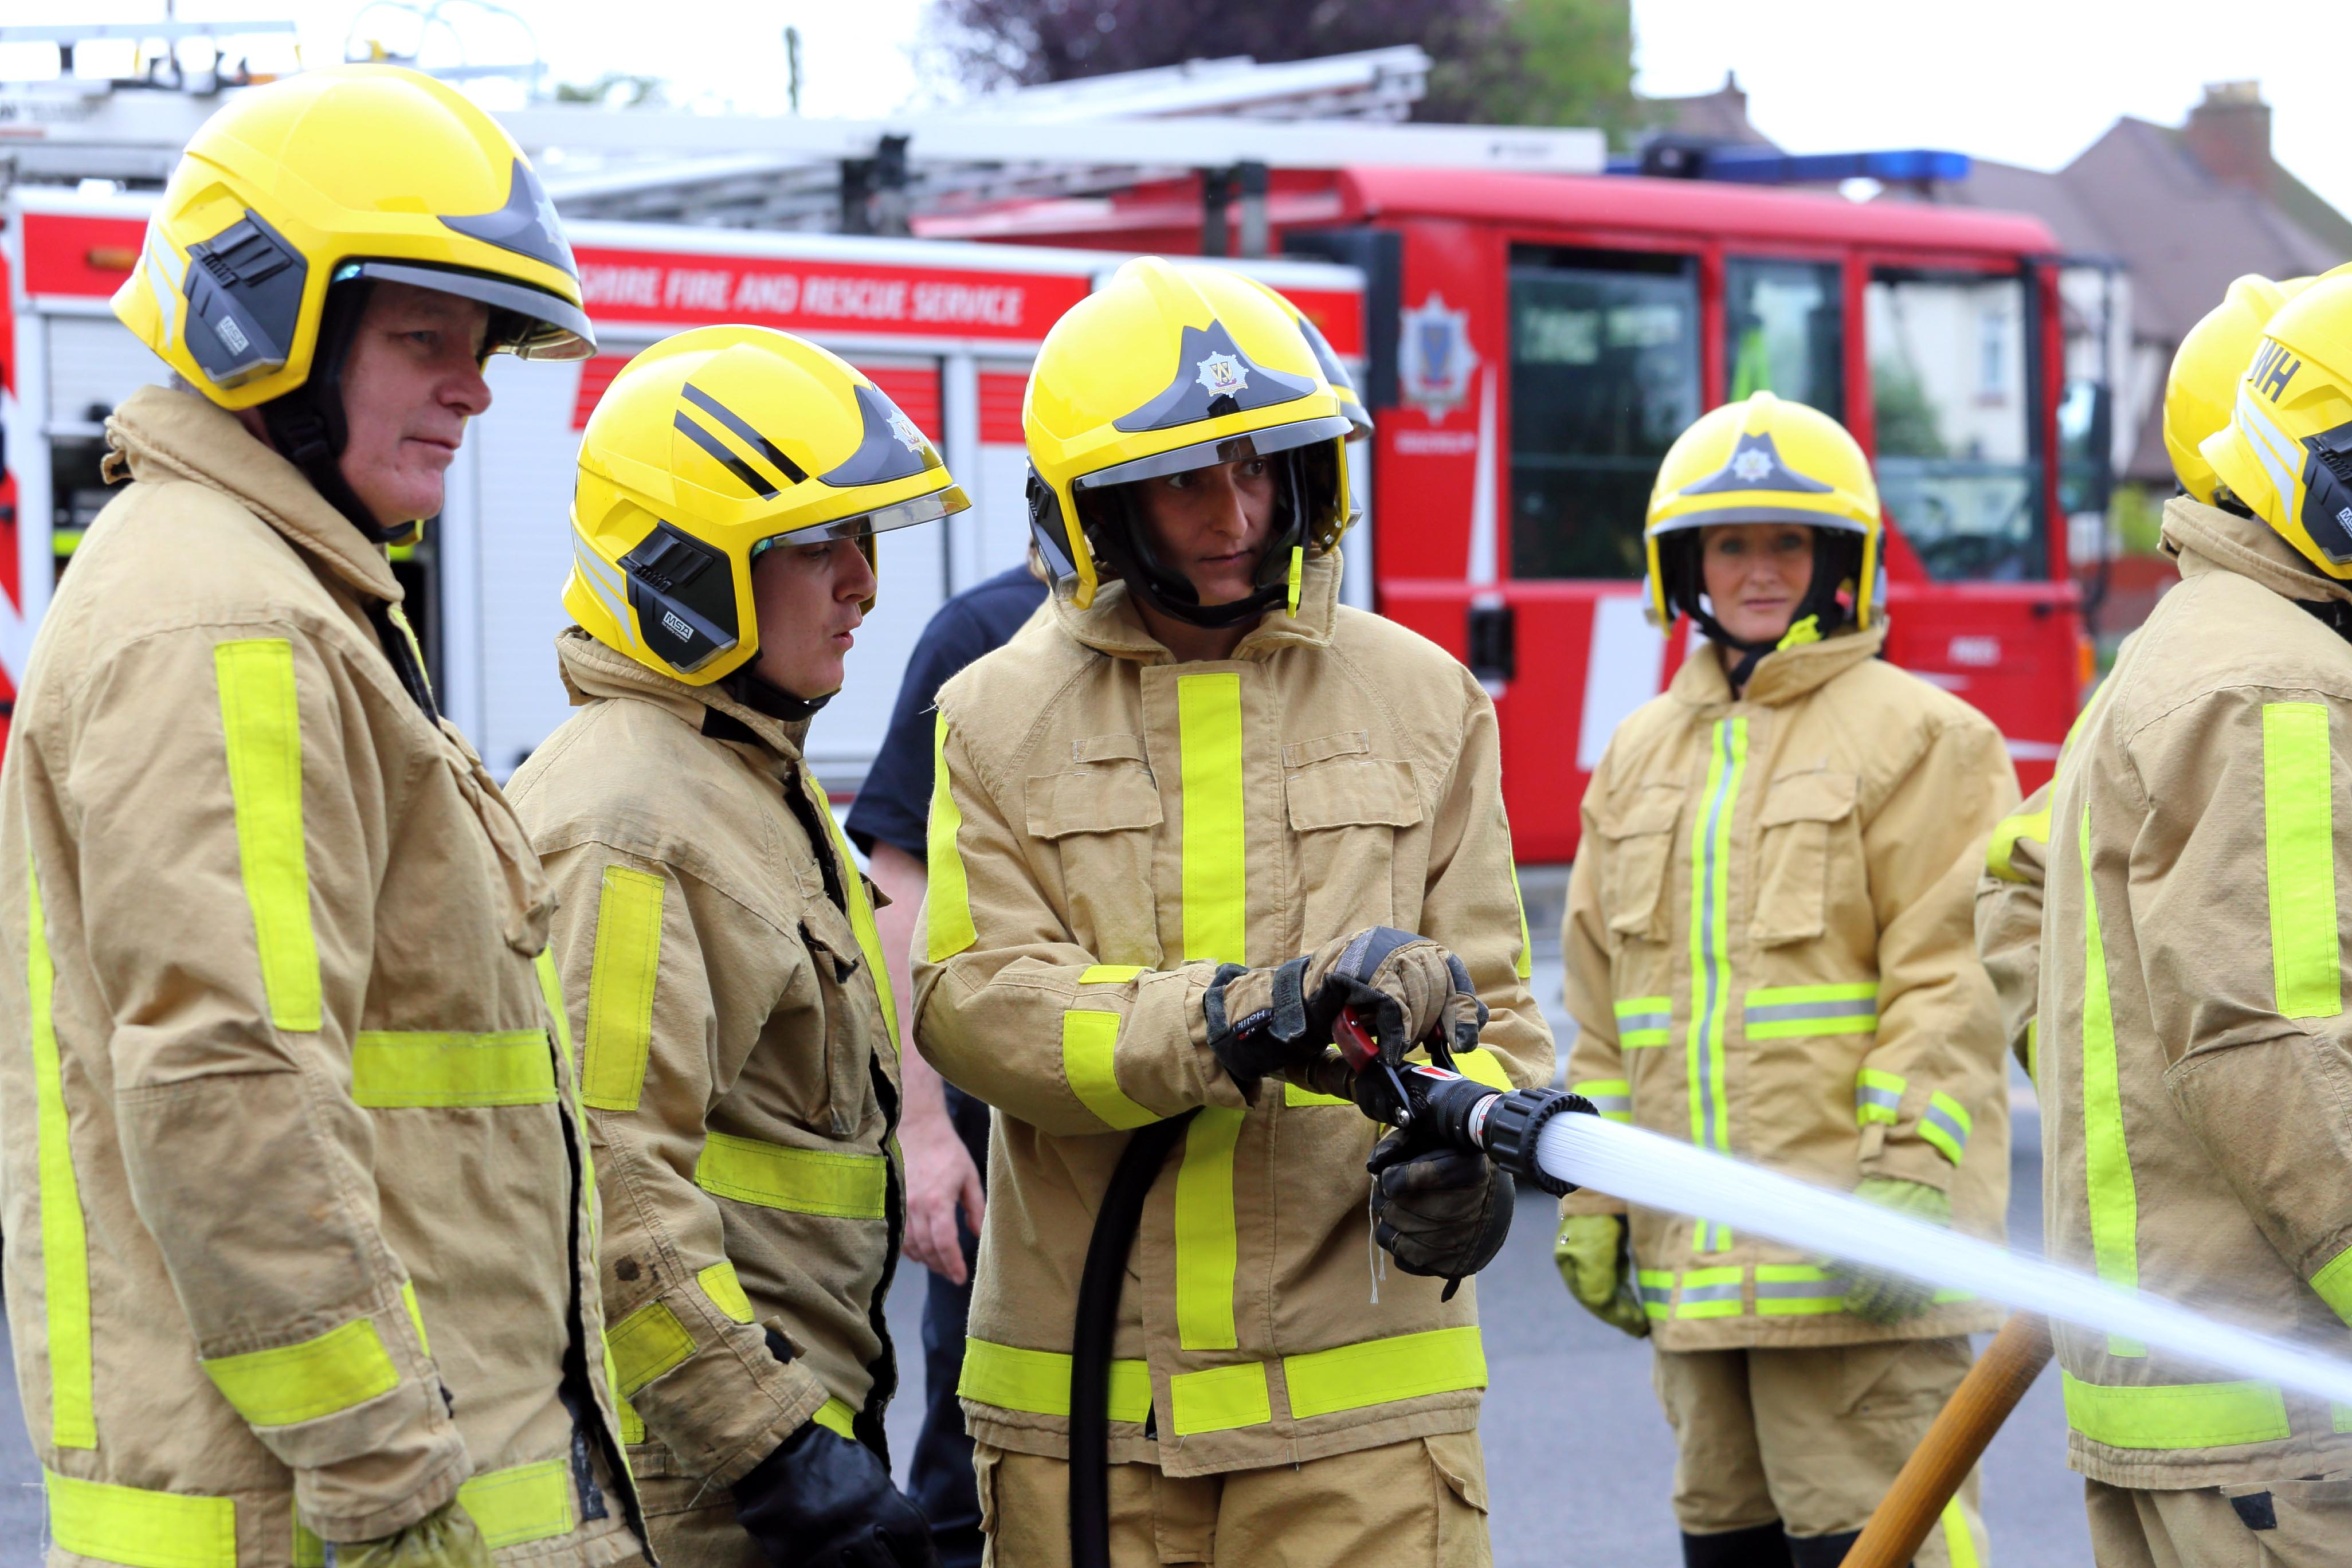 Julie Collins tries out the firefighter hose at the taster event.